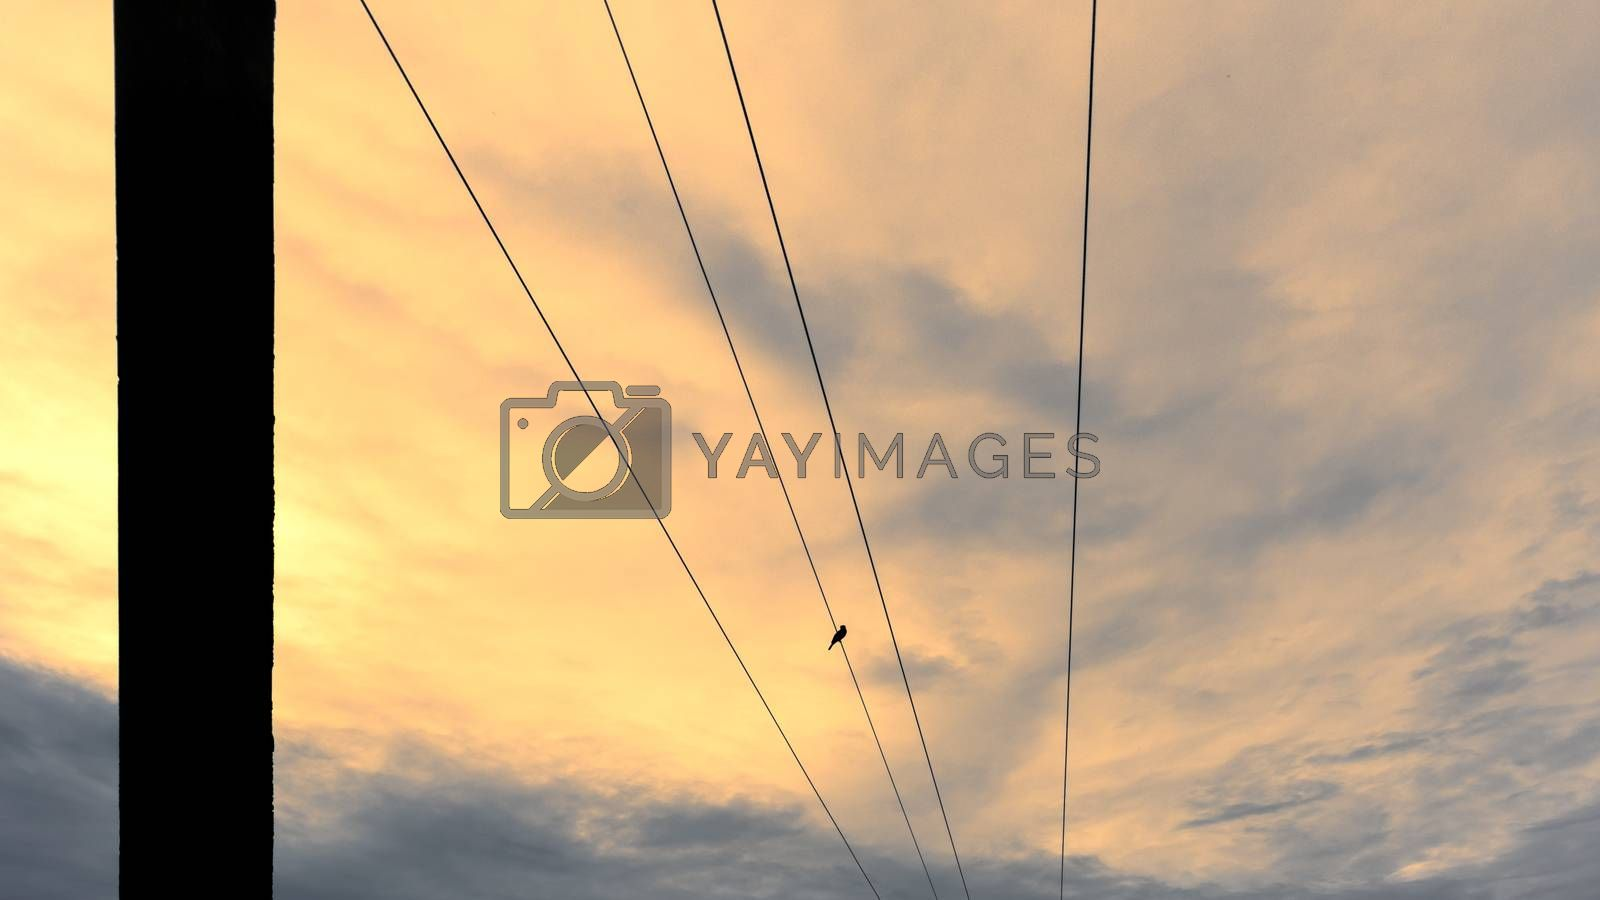 Parallel power lines meets in the horizon evening photograph